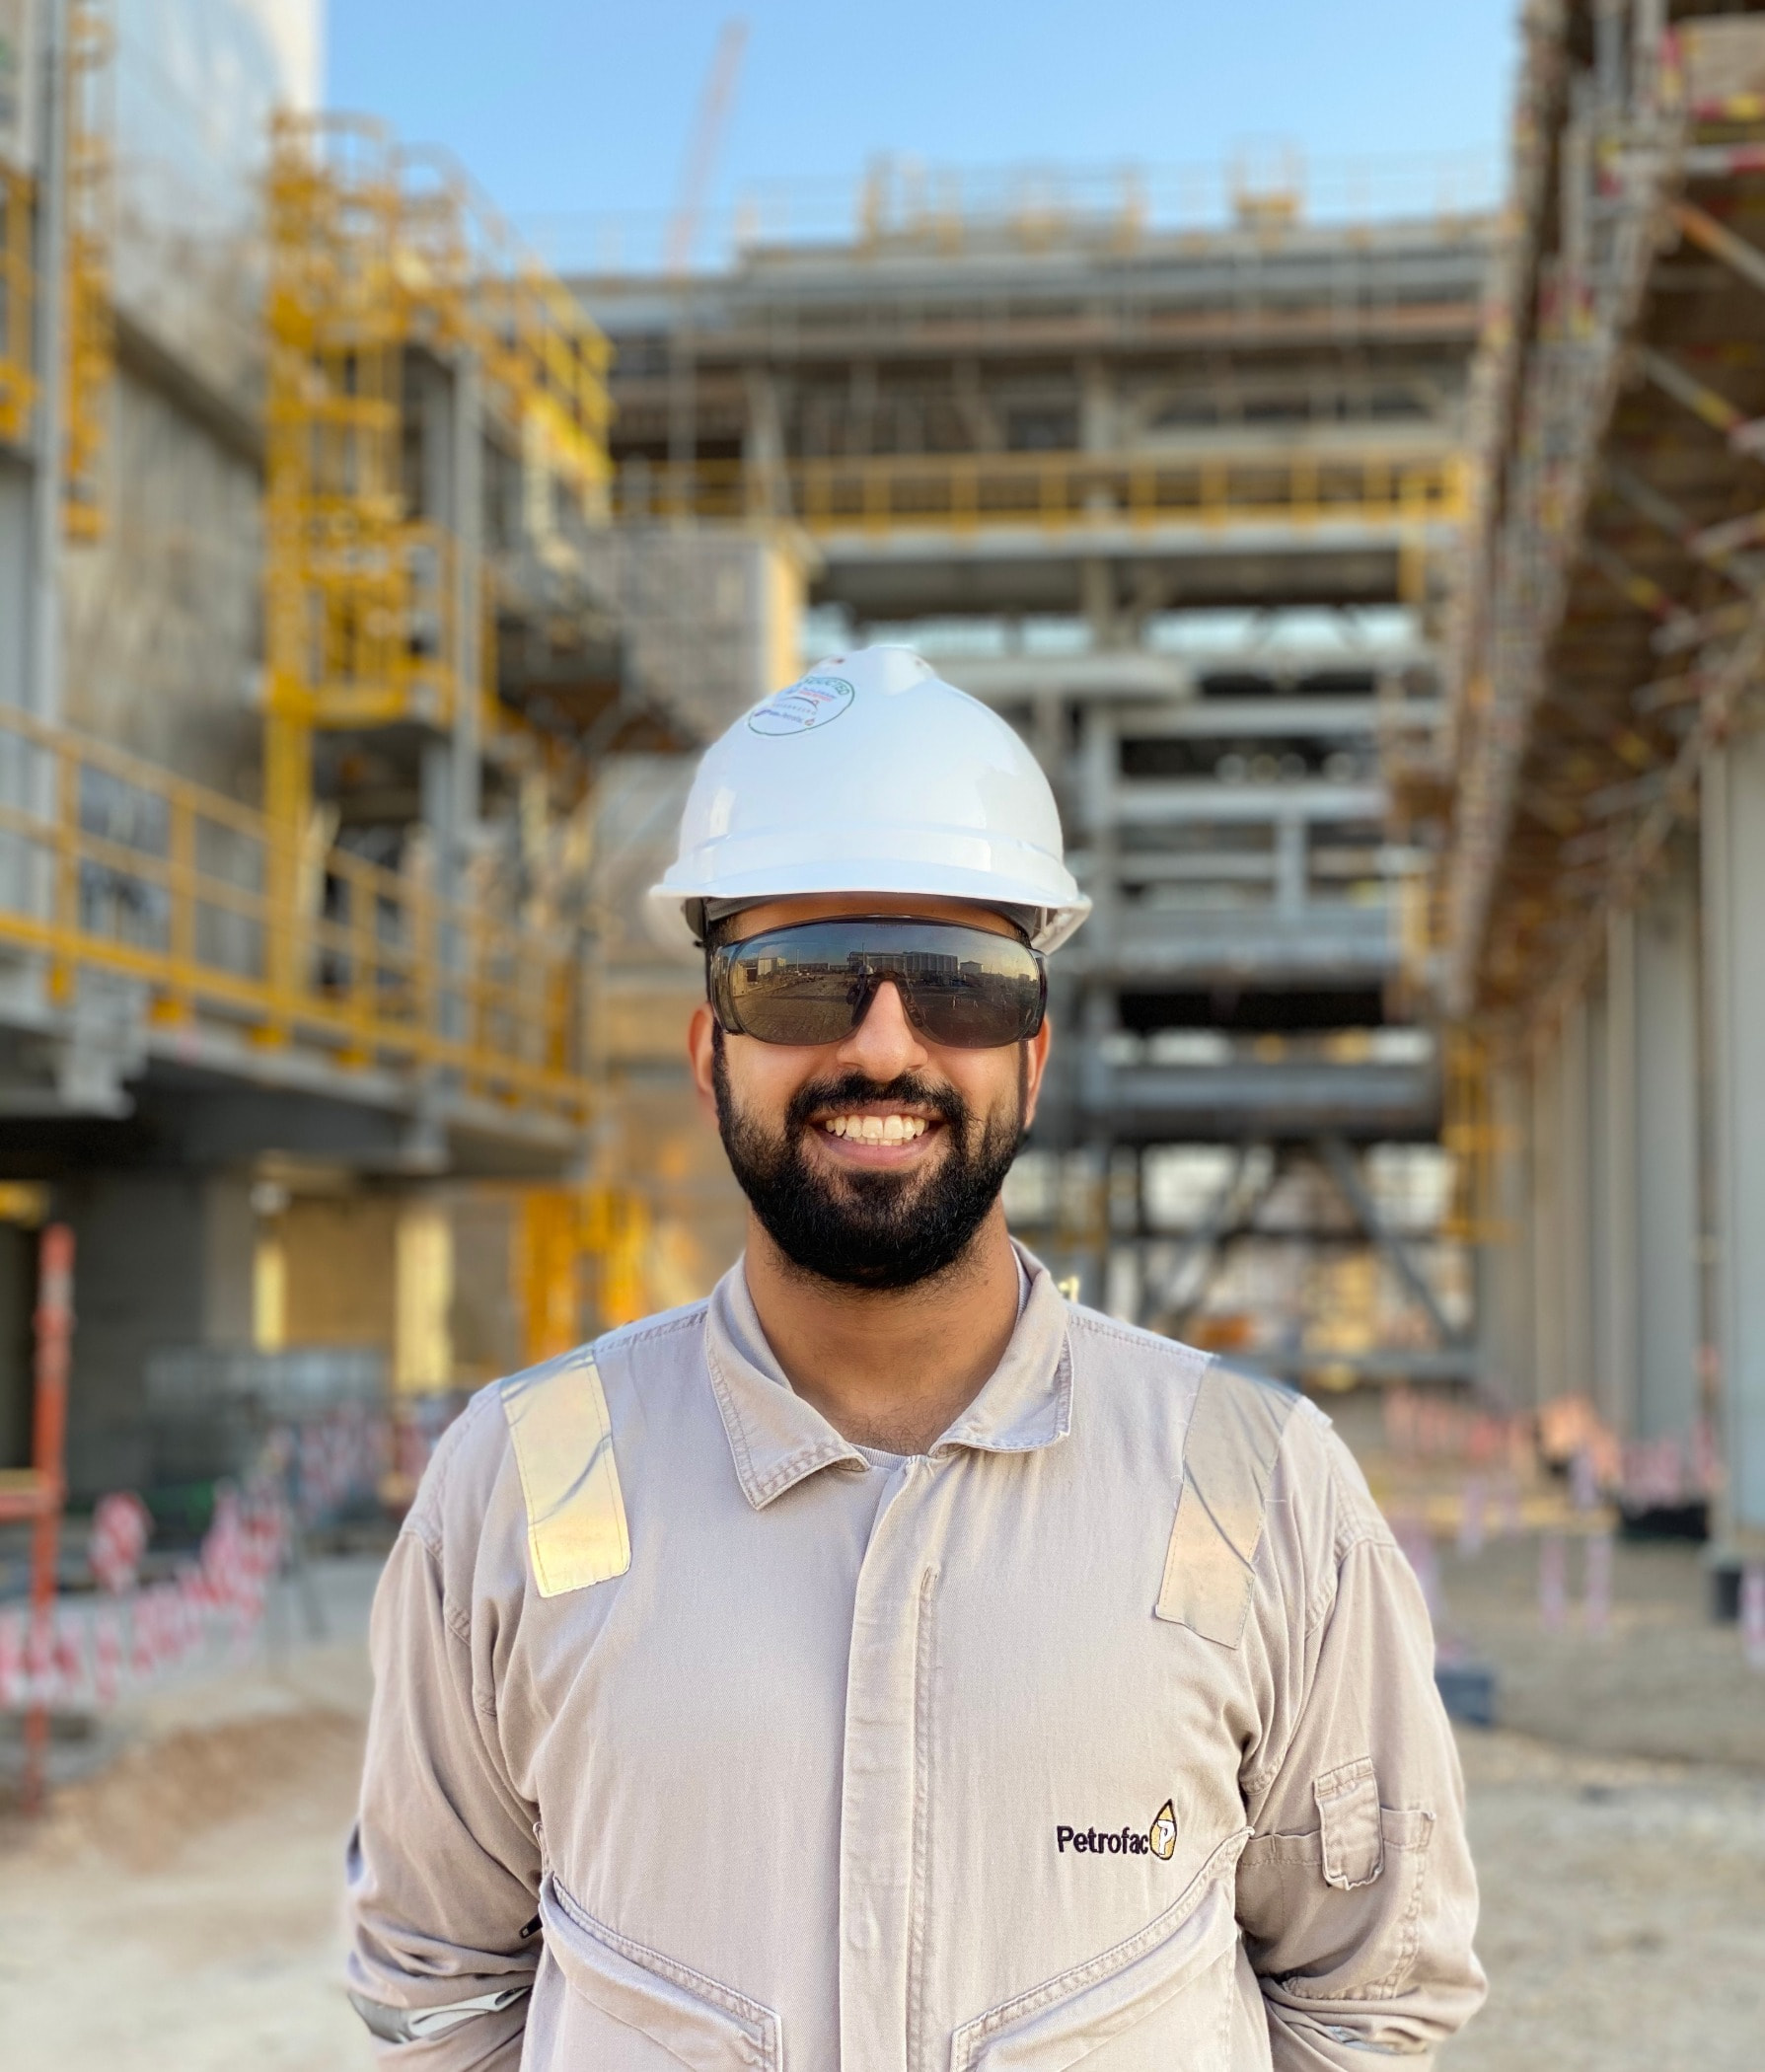 Personal protective equipment, Hard hat, Construction worker